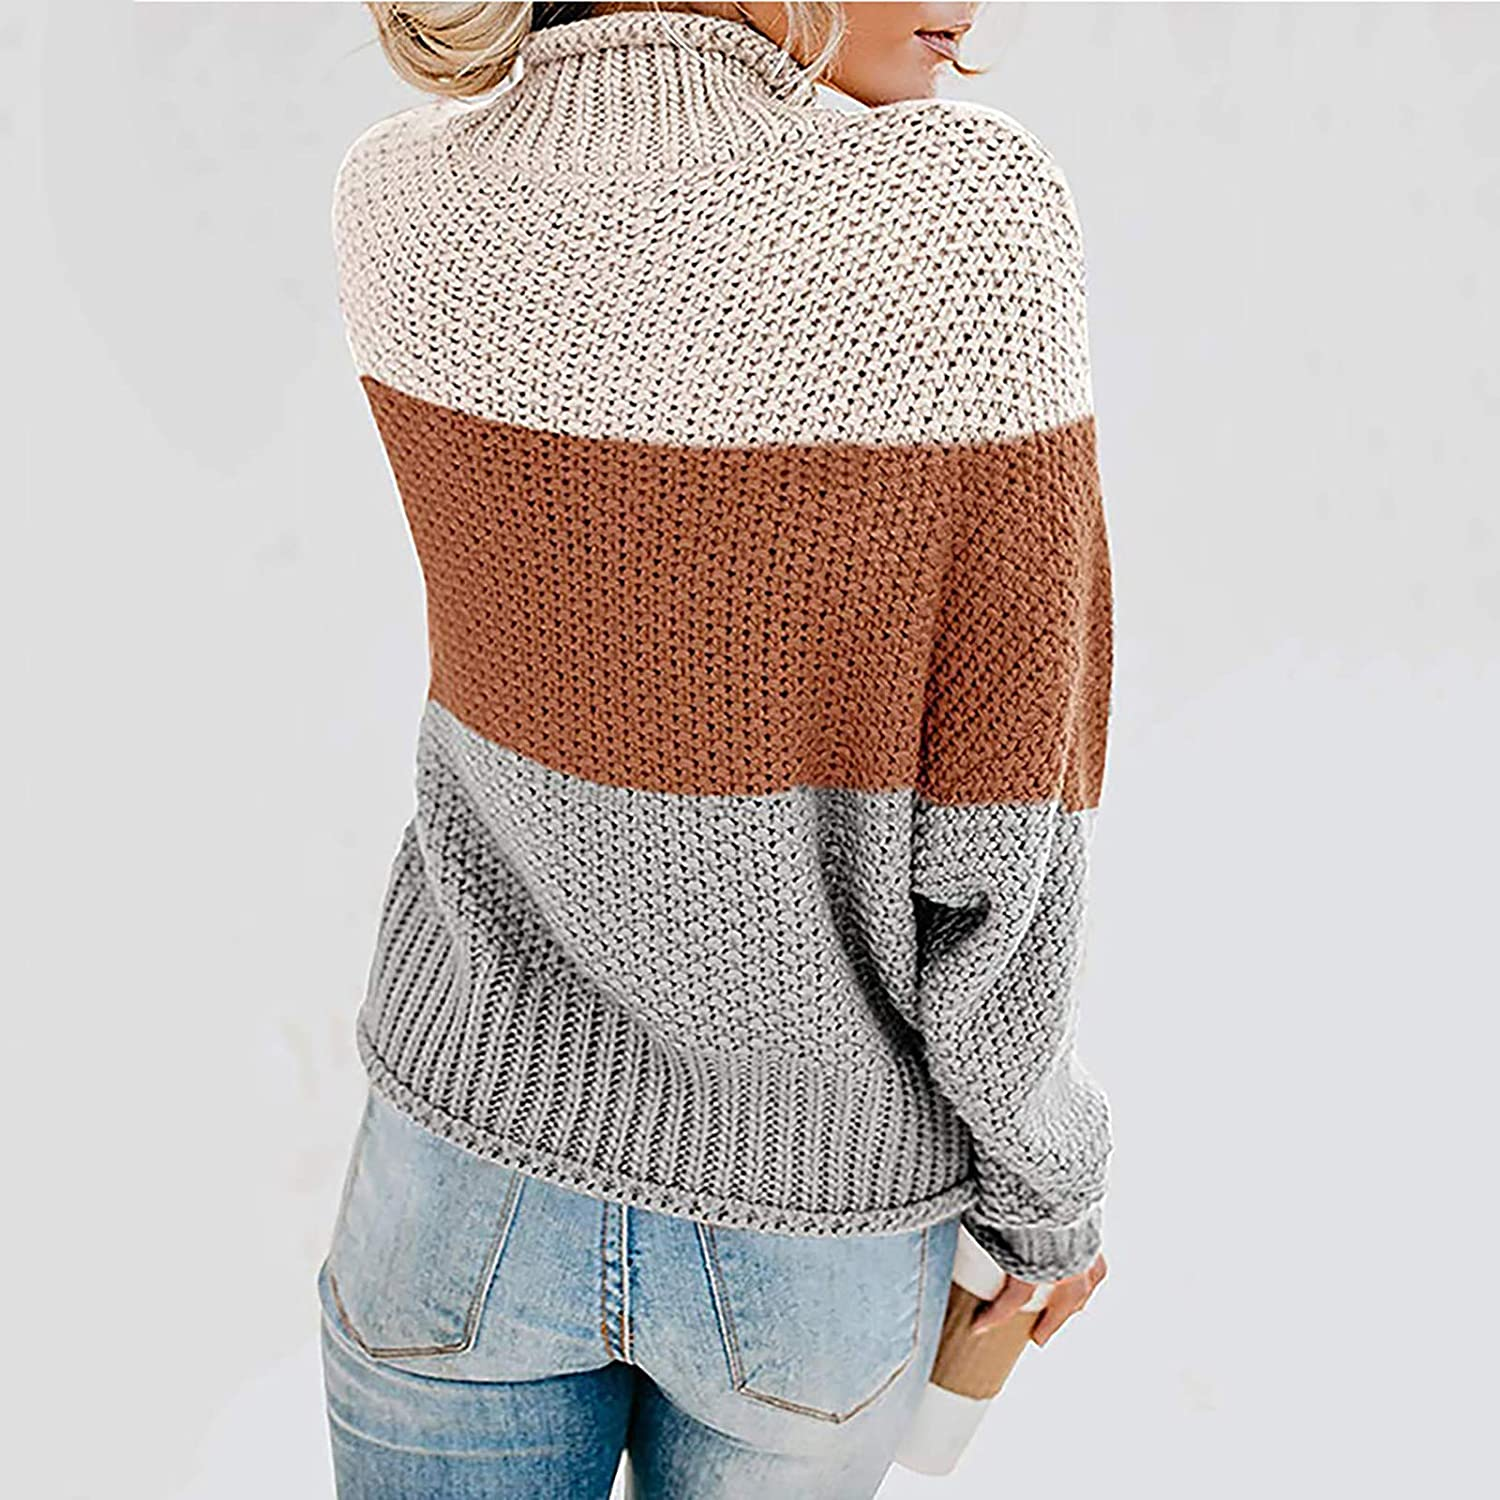 Xinantime Women Color Block Sweater Turtleneck Cable Knitted Tops Autumn Winter Warming Blouse Pullover Trendy Shirt